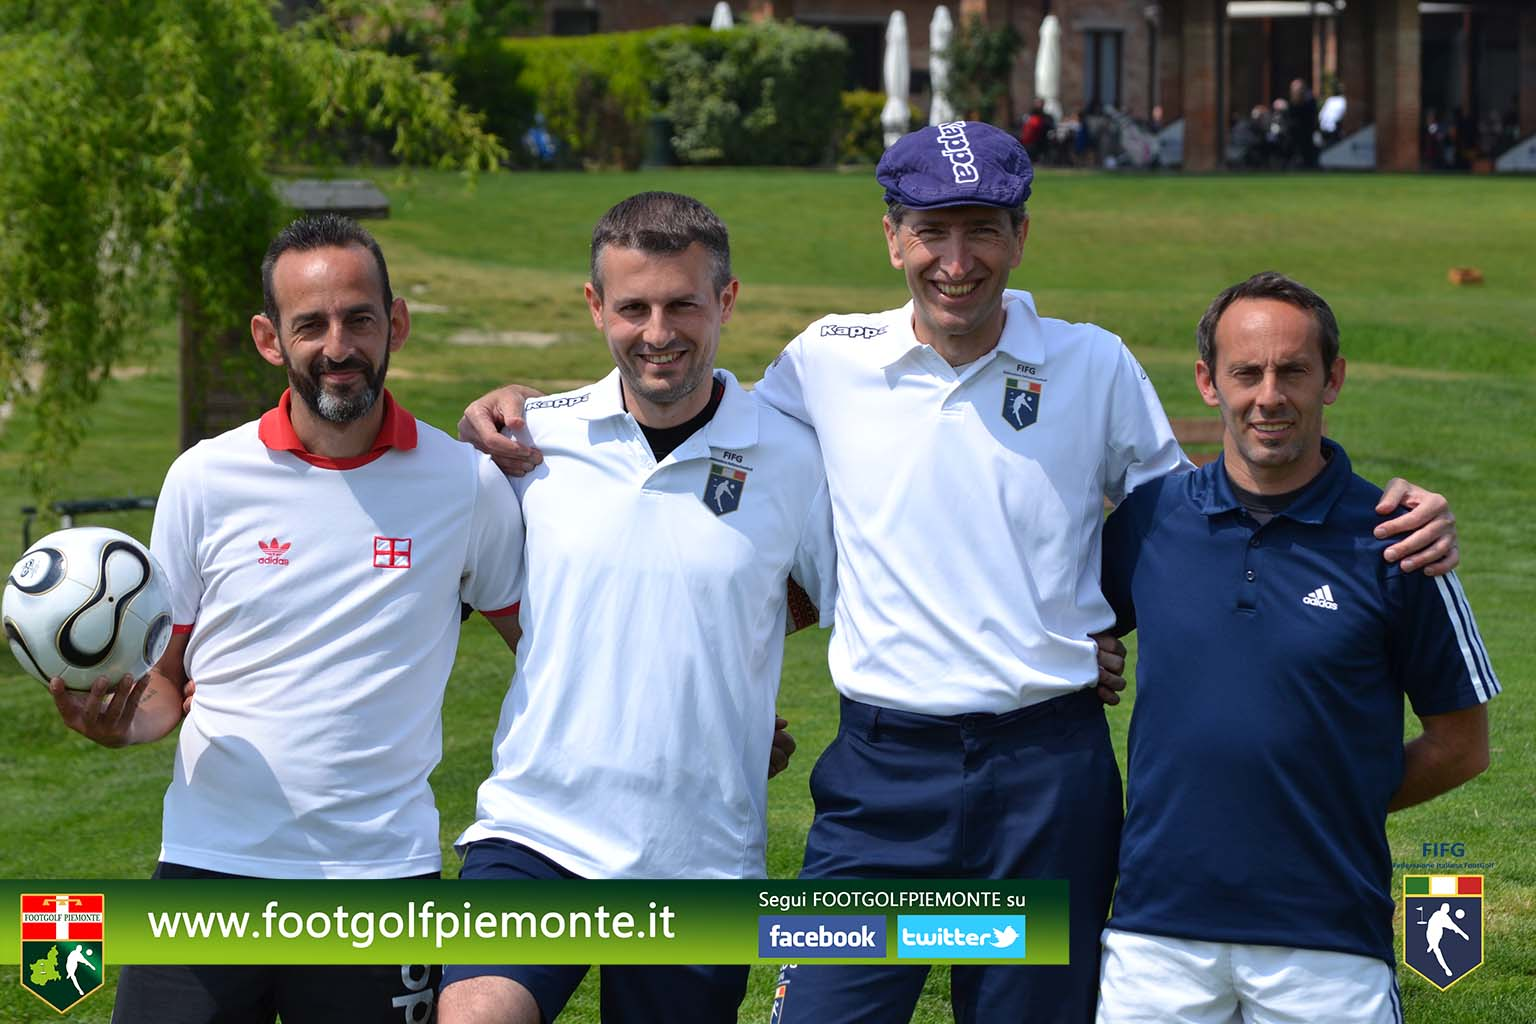 FOTO 9 Regions' Cup Footgolf Piemonte 2016 Golf Città di Asti (At) 30apr16-93